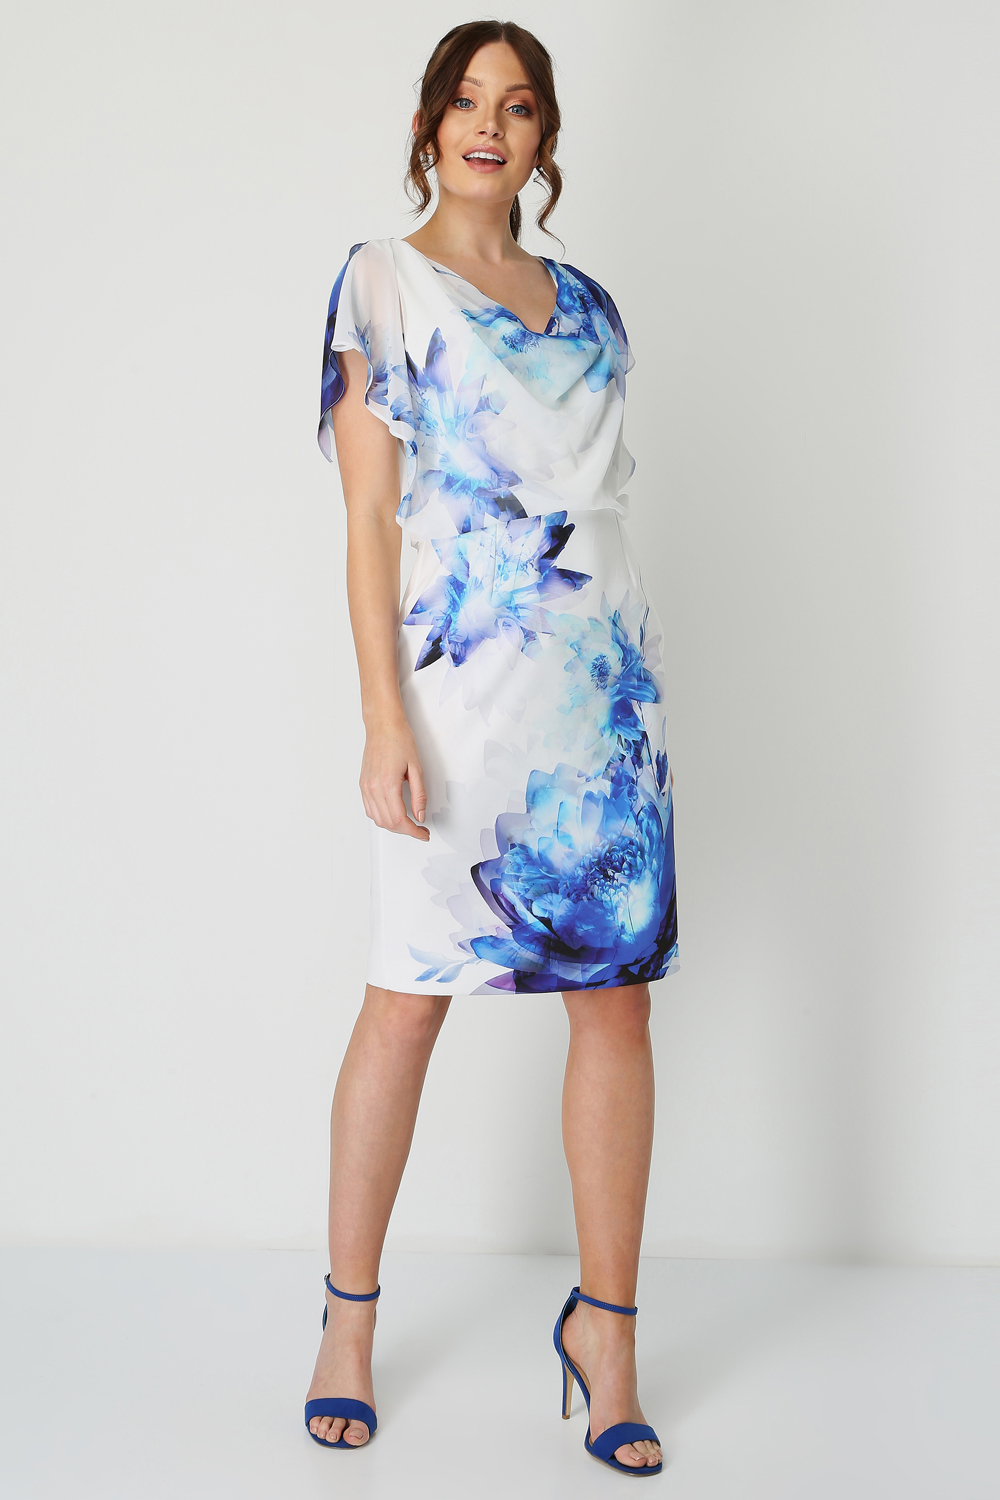 Roman-Originals-Chiffon-Overlay-Scuba-Dress thumbnail 9